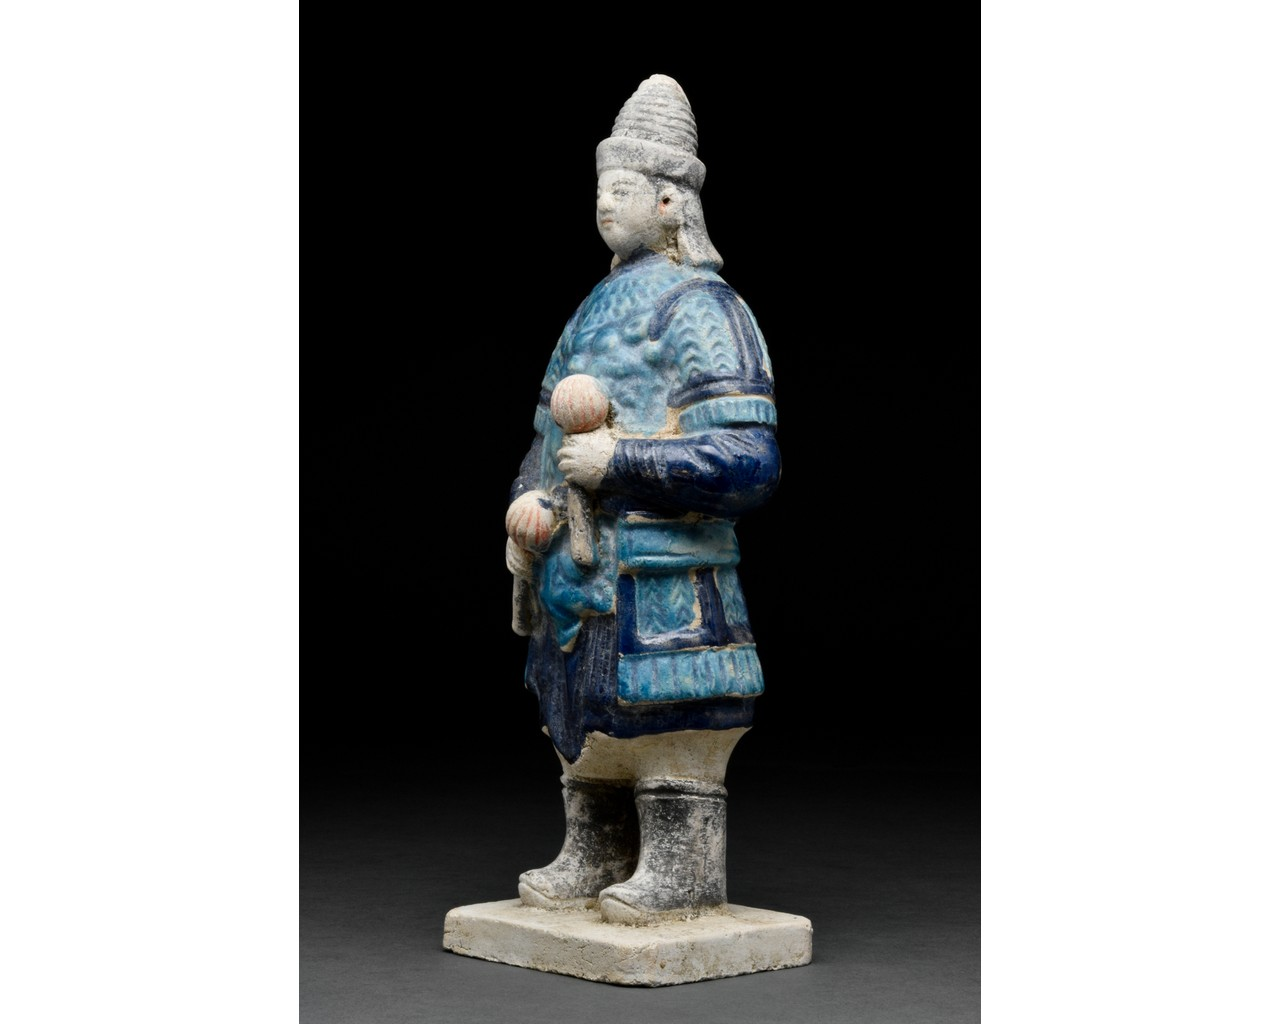 CHINESE MING DYNASTY TERRACOTTA FIGURE - Image 2 of 4